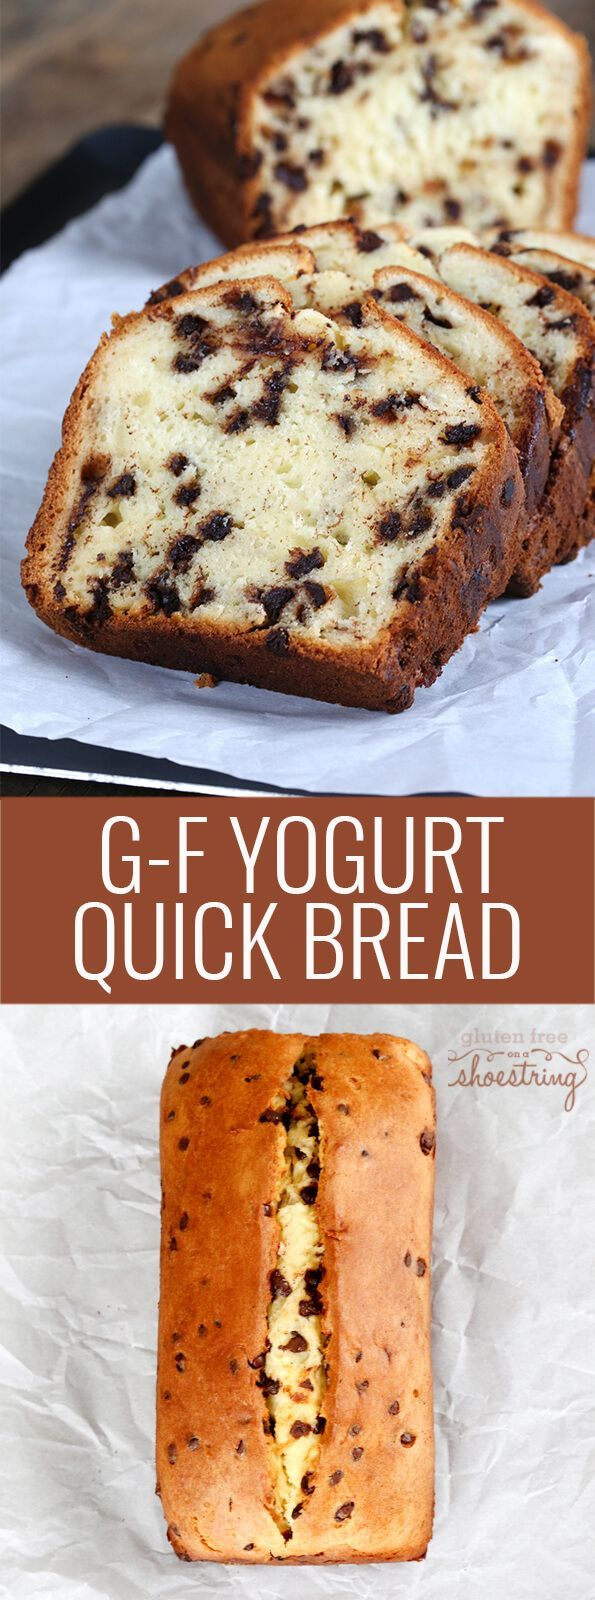 This tested recipe for gluten free quick bread is made with yogurt and chocolate chips. Super simple recipe, moist and tender results!